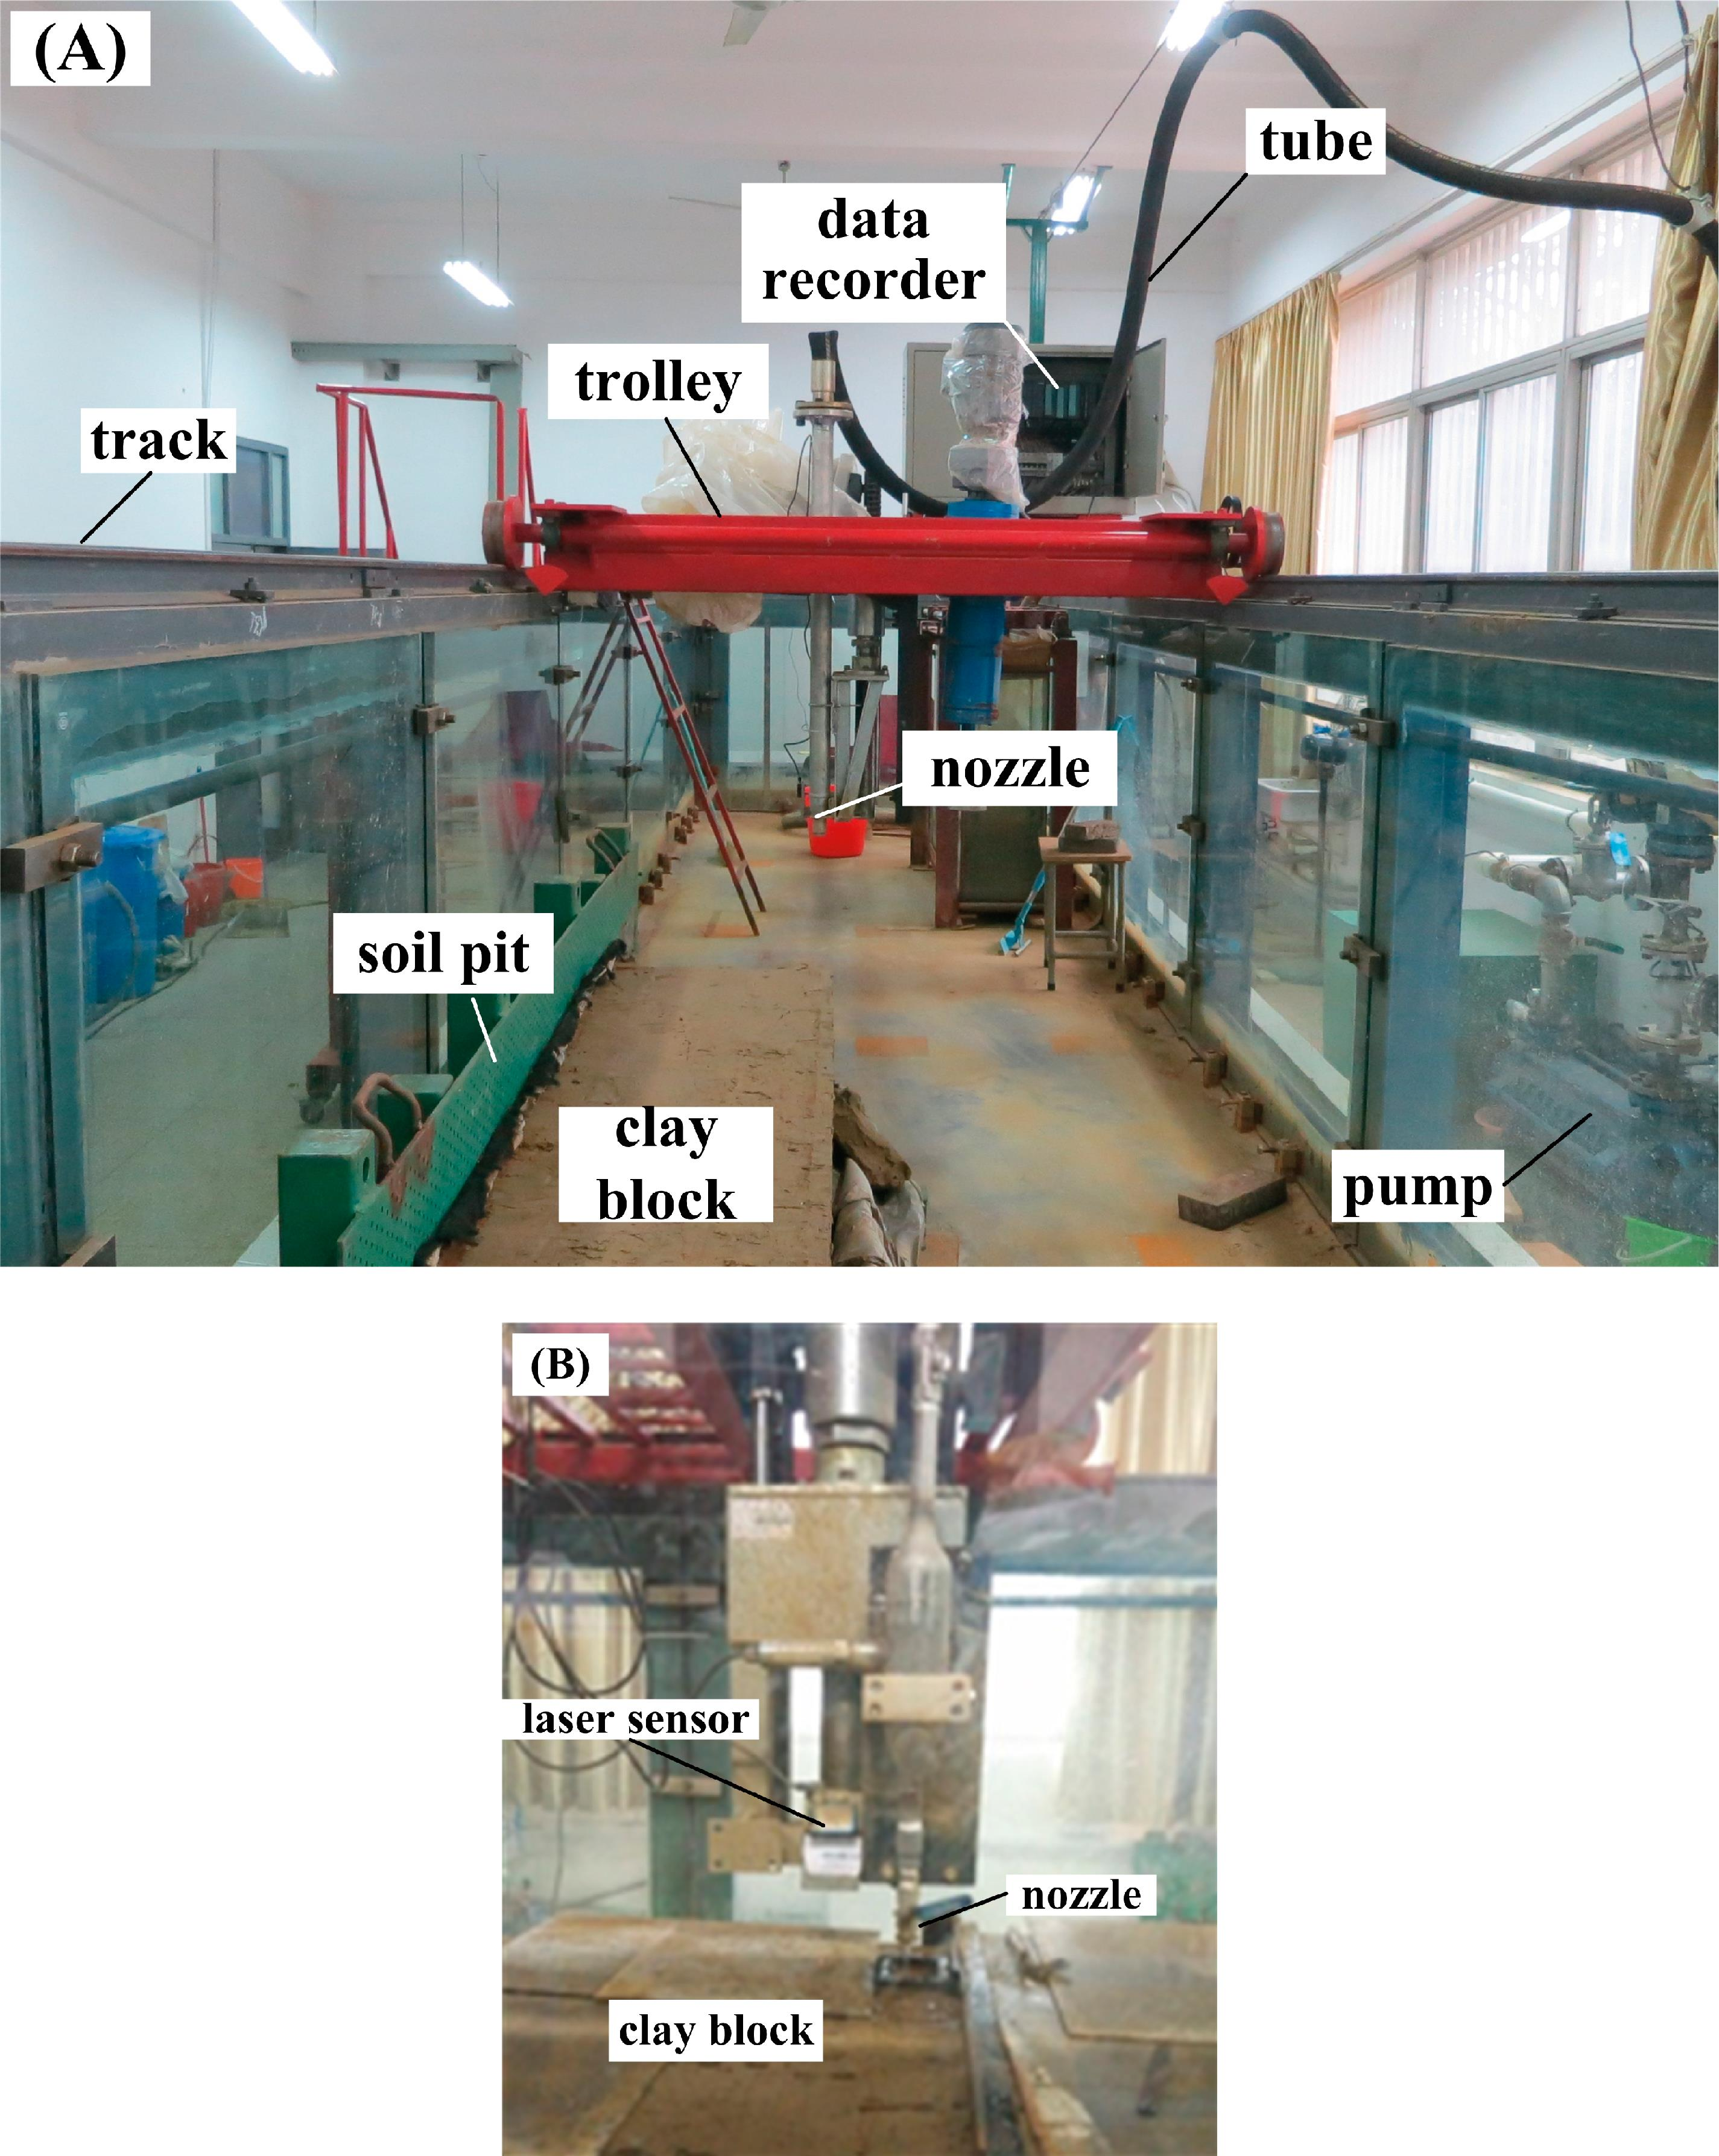 Determining the Threshold Pressure of Clay-Cutting by a Mobile Jet